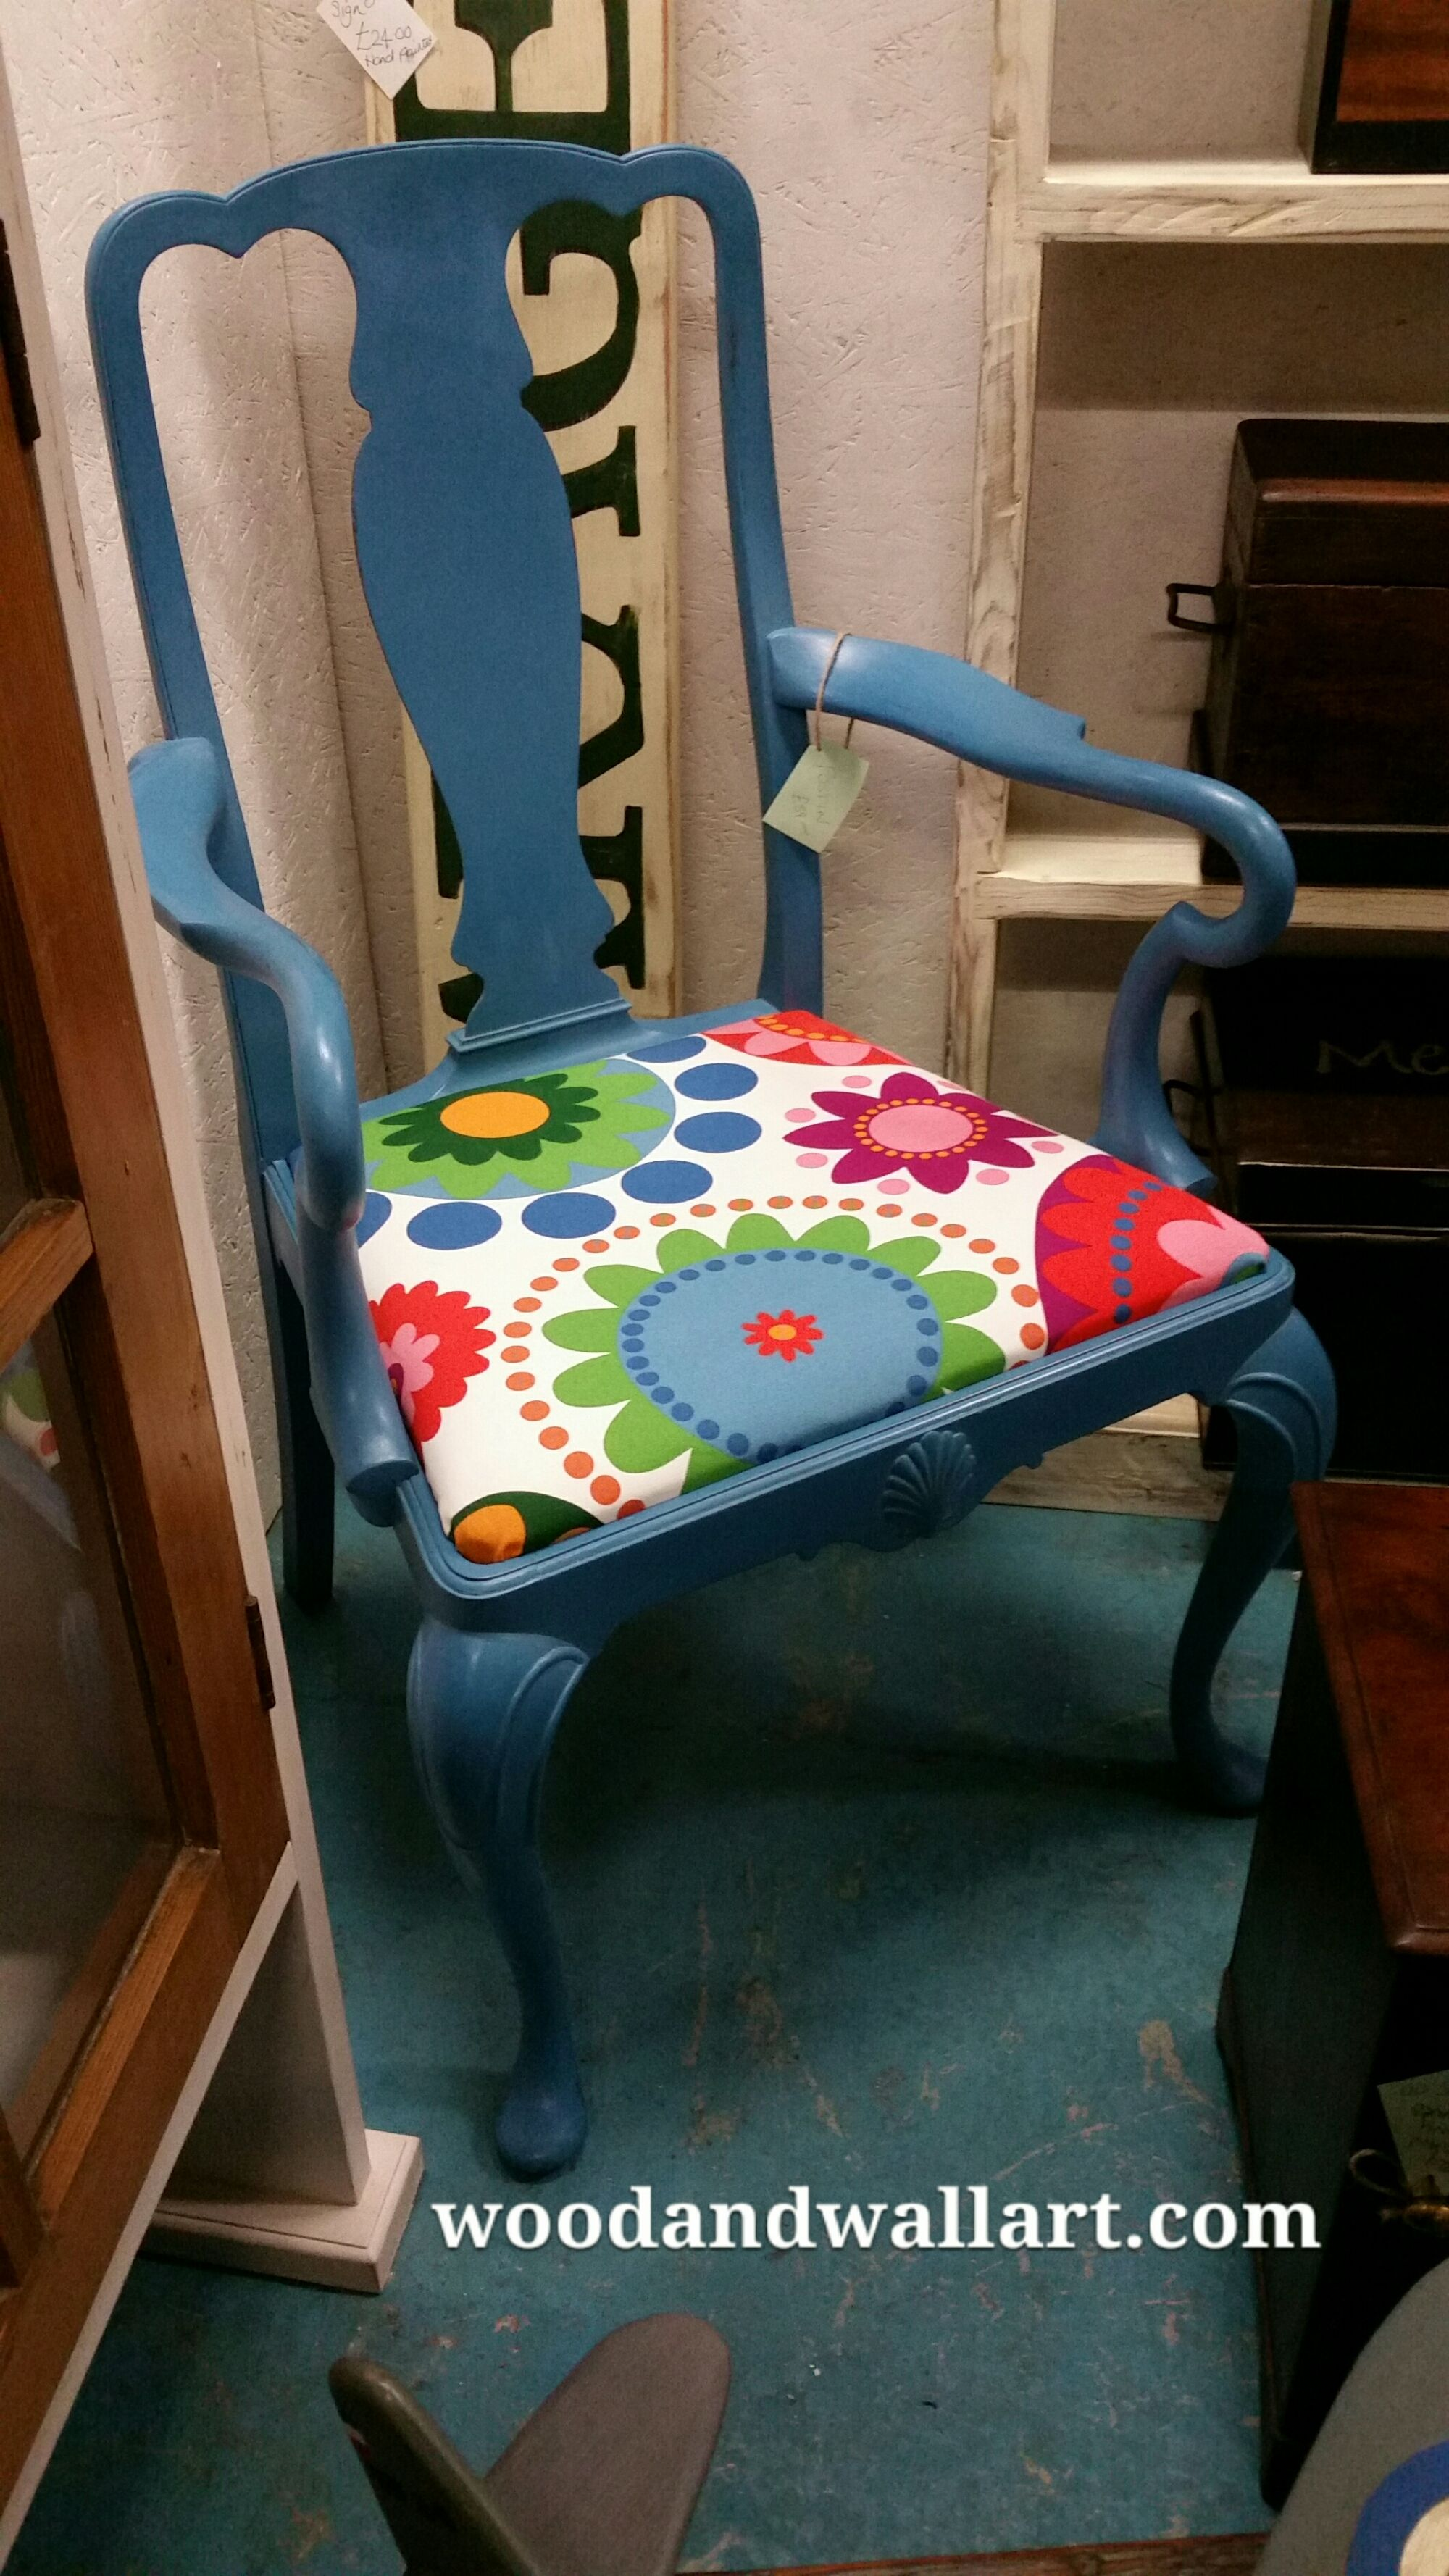 Interesting Queen Ann style chair with a funky 21century look